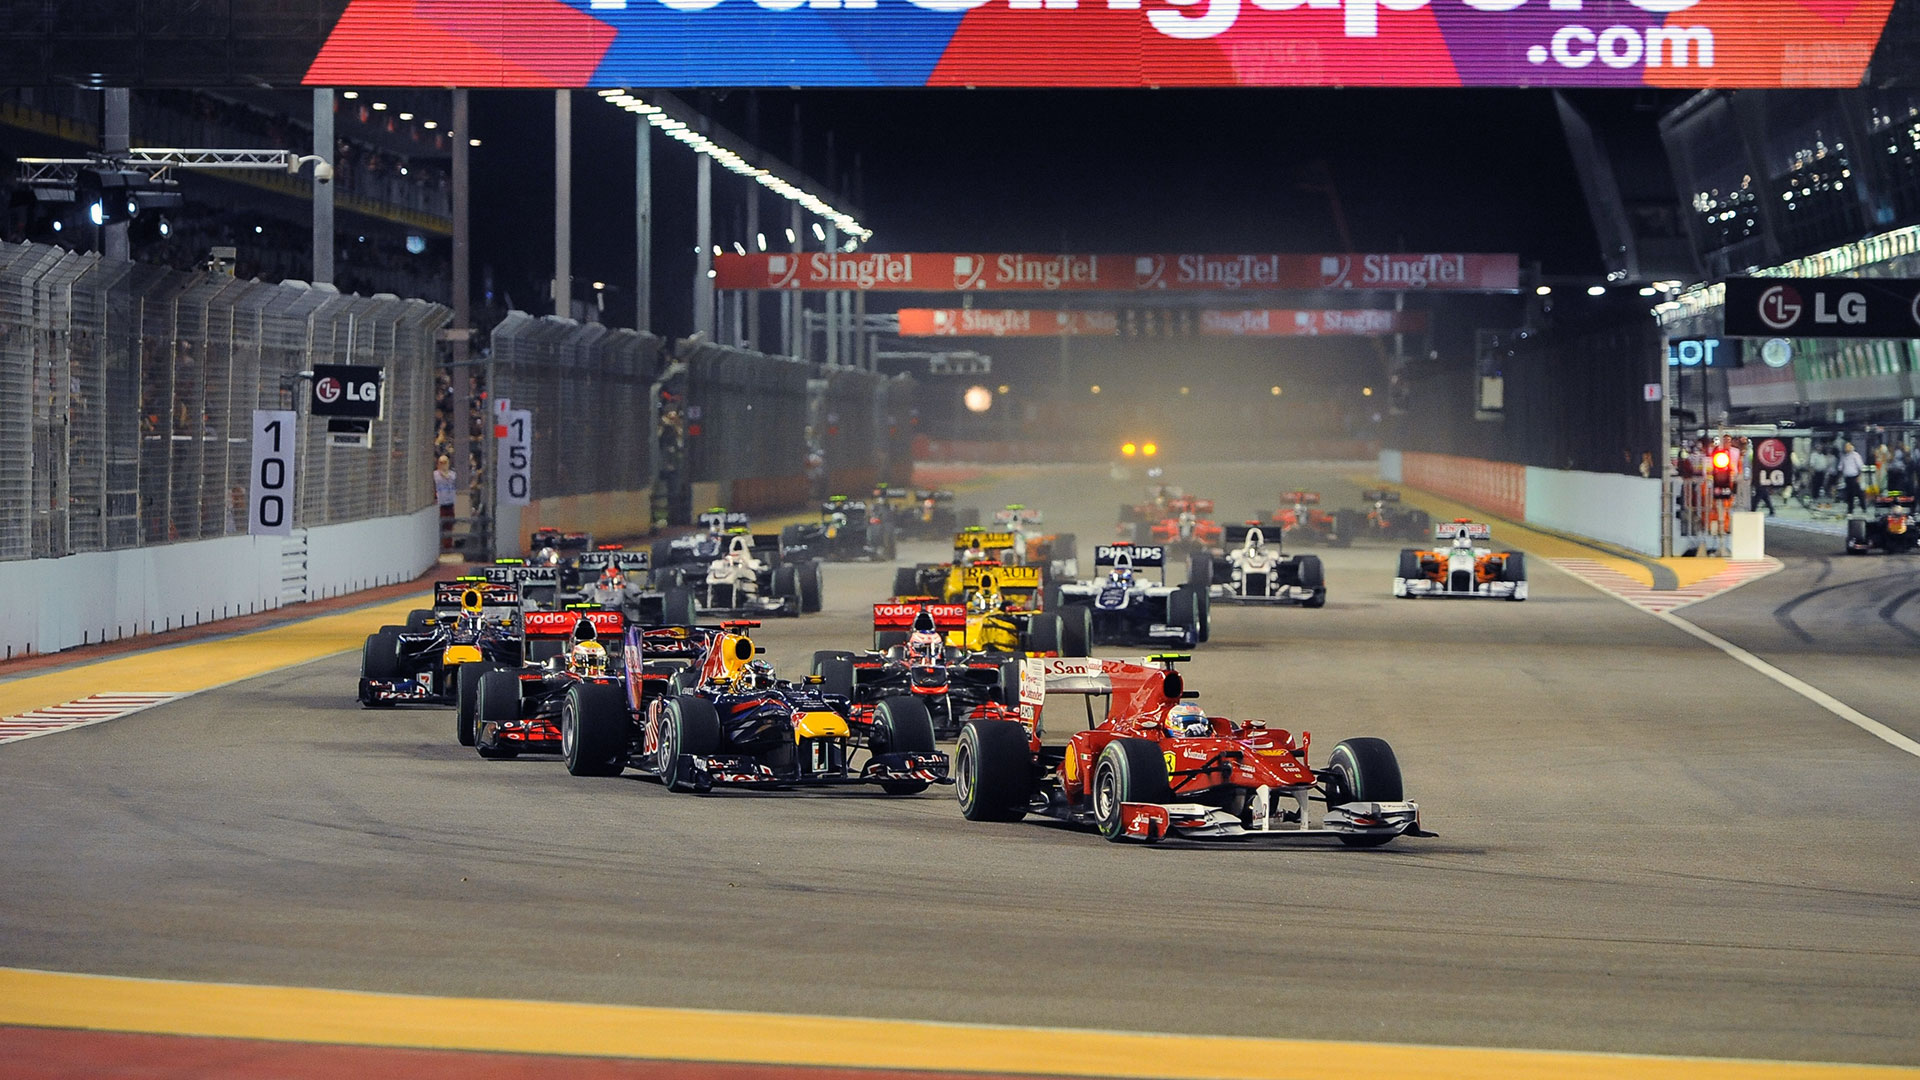 The Beginner's Guide to F1 Travel - F1Destinations.com